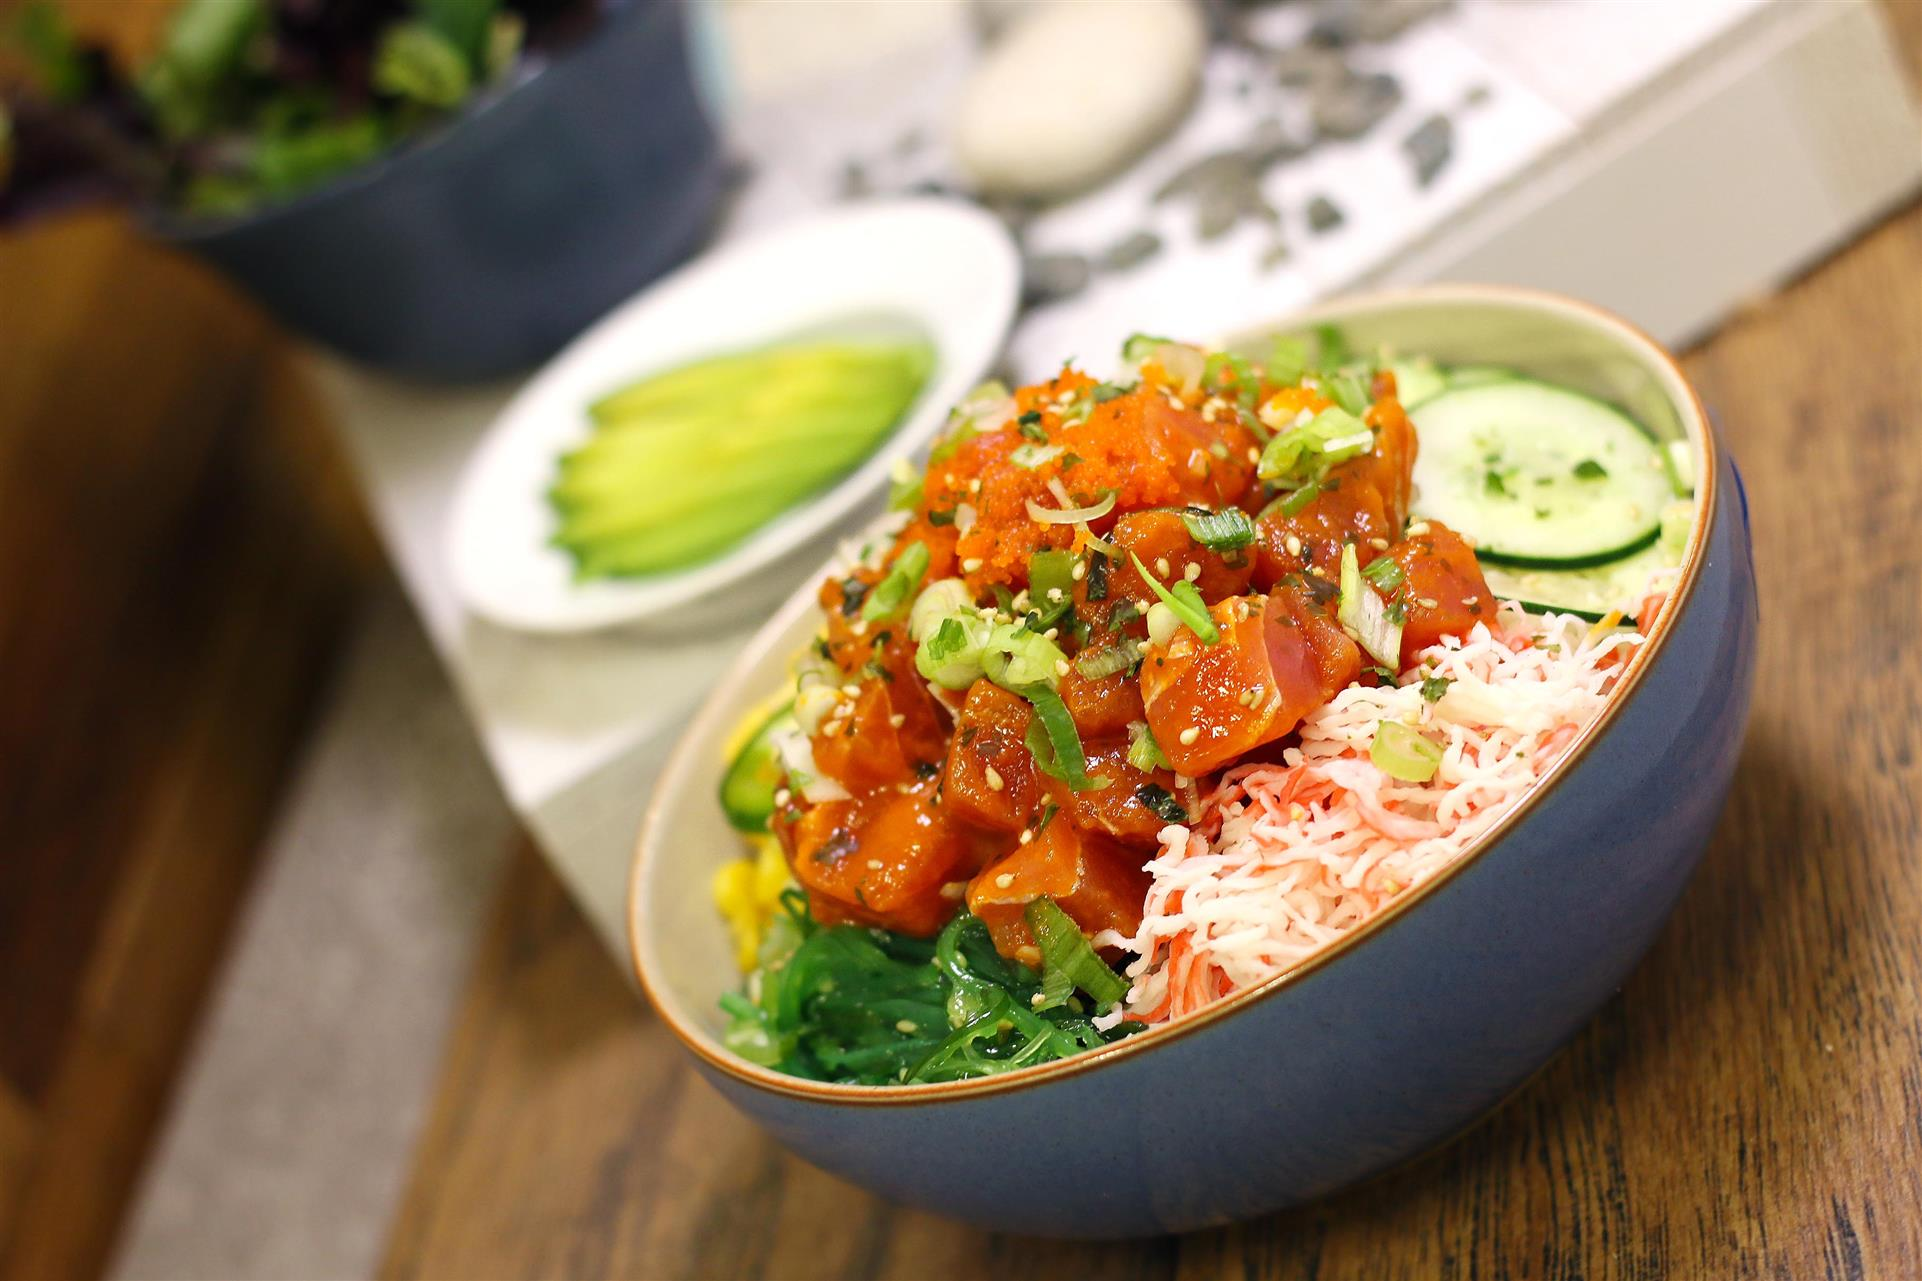 poke bowl with various ingredients, alongside side plate of sliced avocados